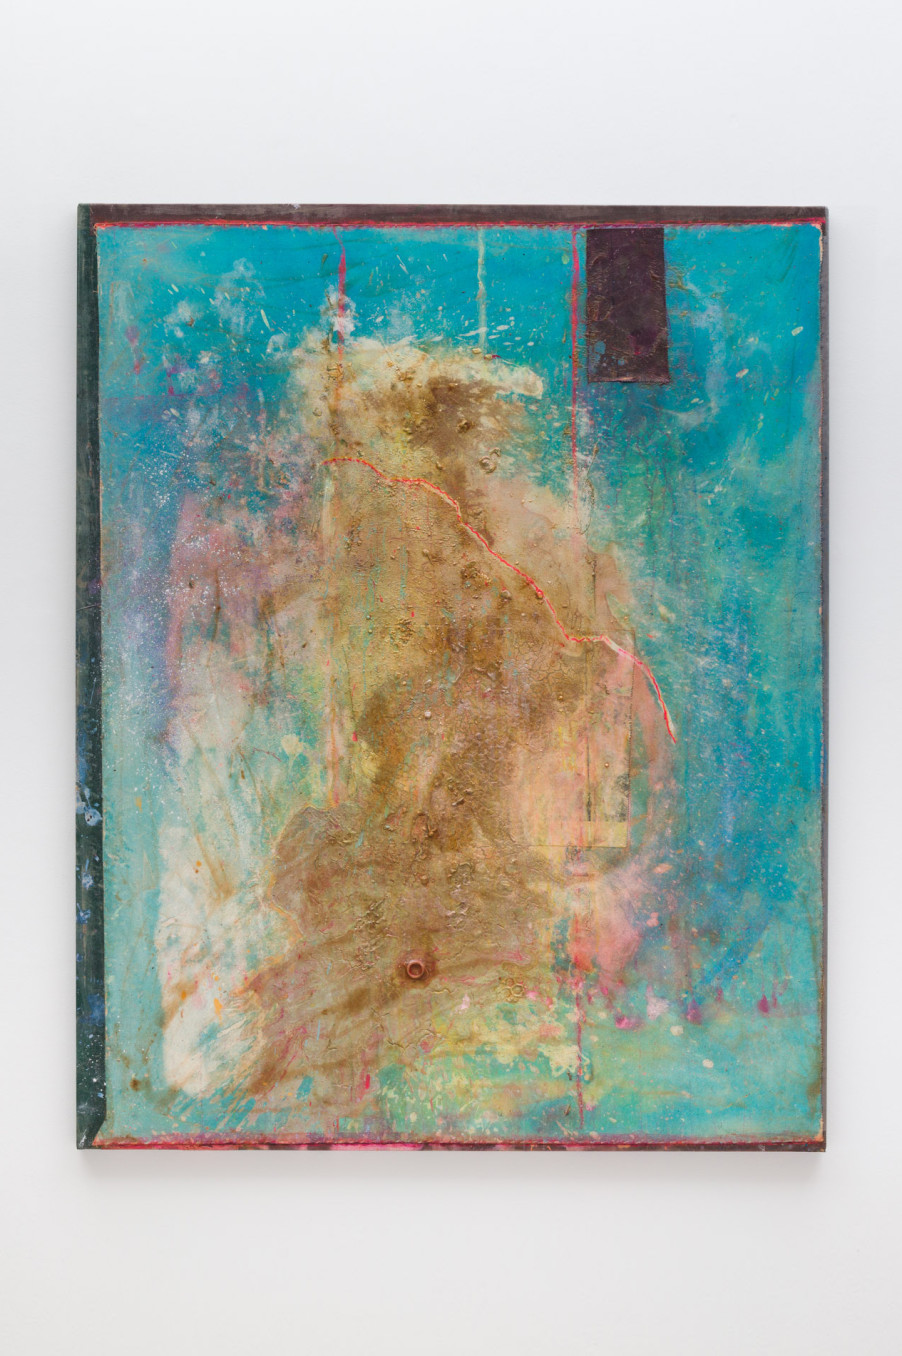 Frank Bowling, More Land than Landscape (Teenage Hulkster's Route), 2017